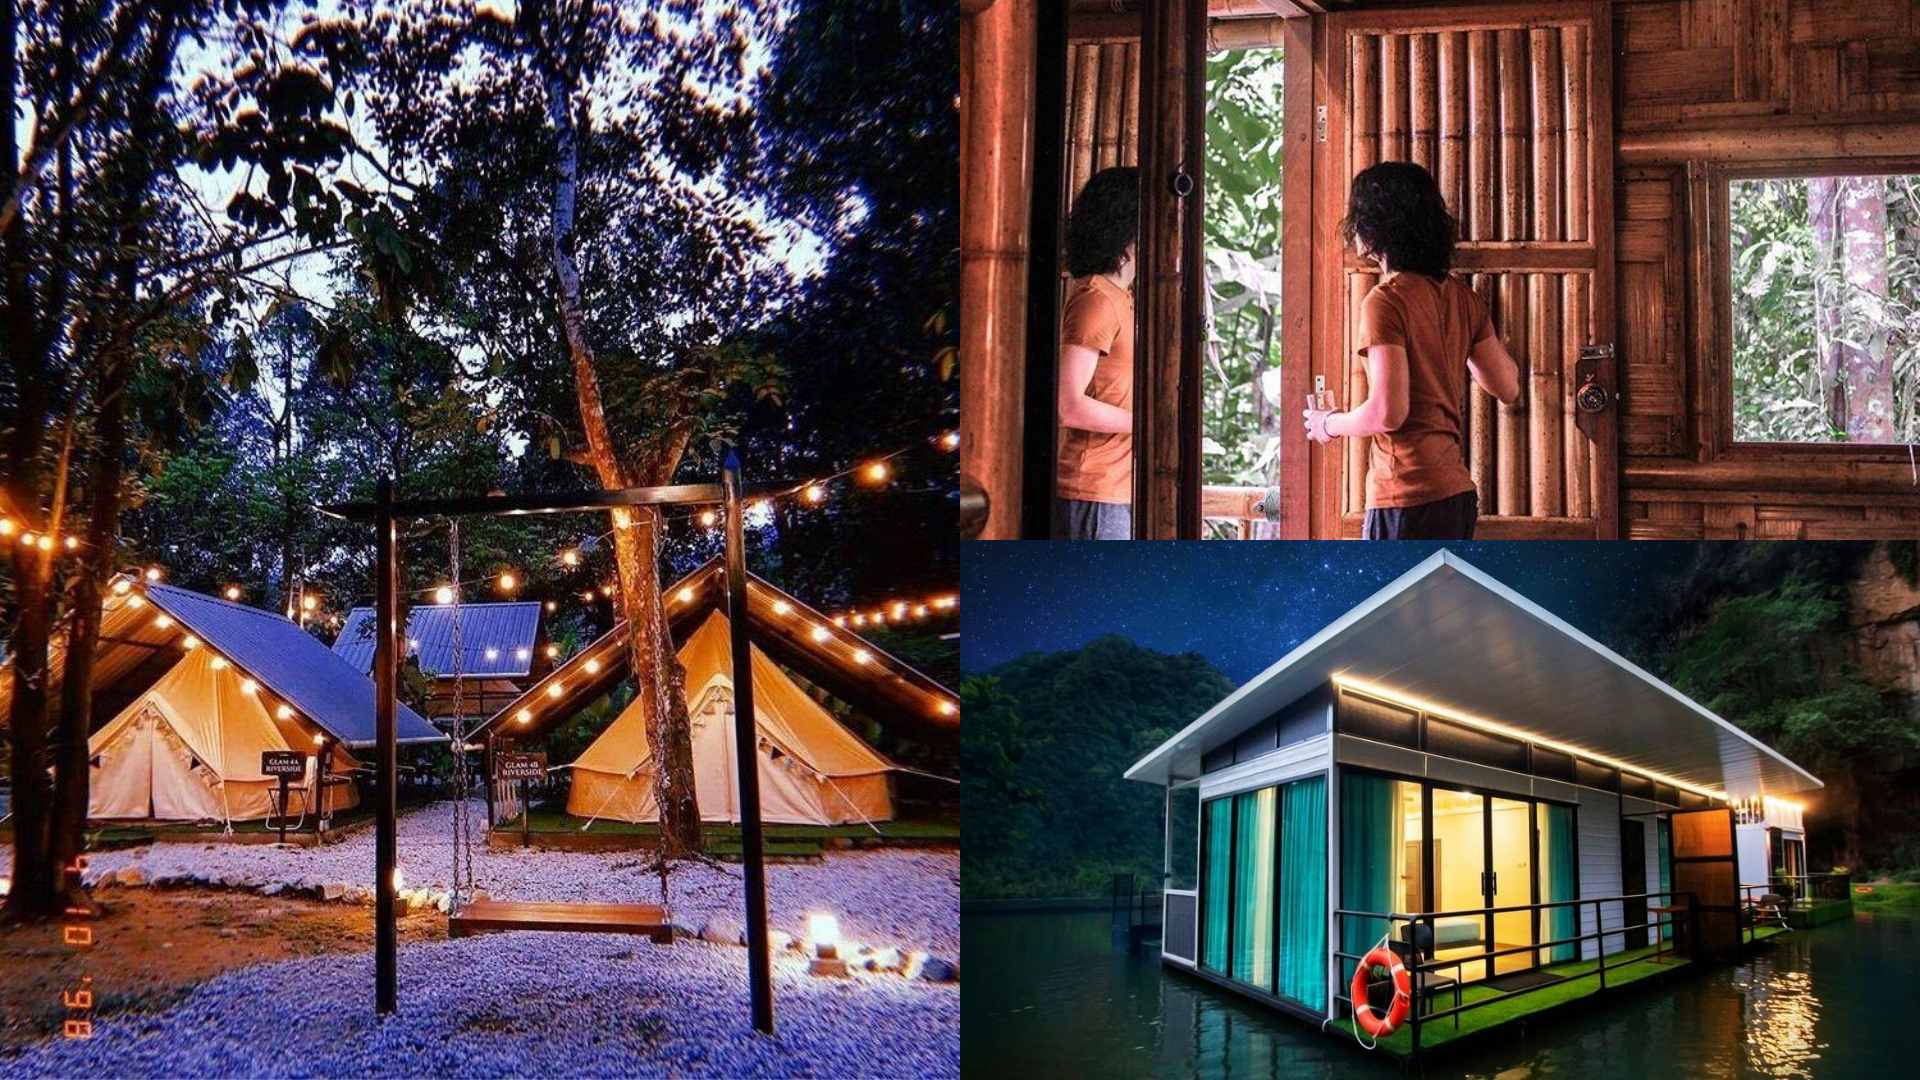 9 Best Camping And Glamping Spots In Malaysia With Scenic Views And Fresh Air